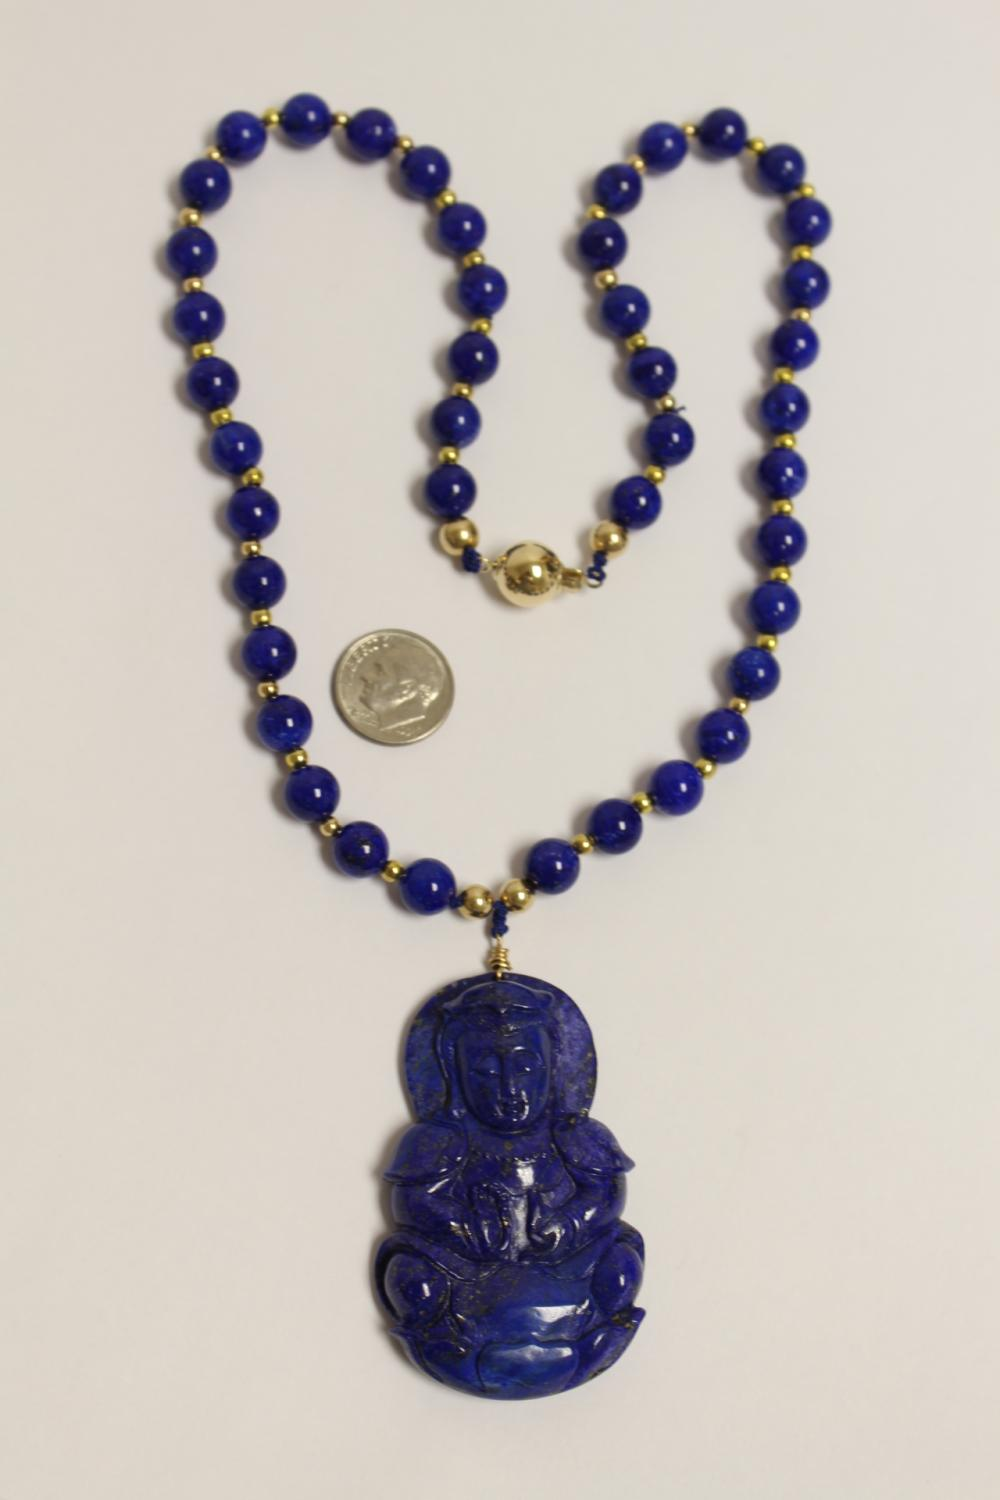 Chinese lapis pendant w/ lapis & gold bead necklace